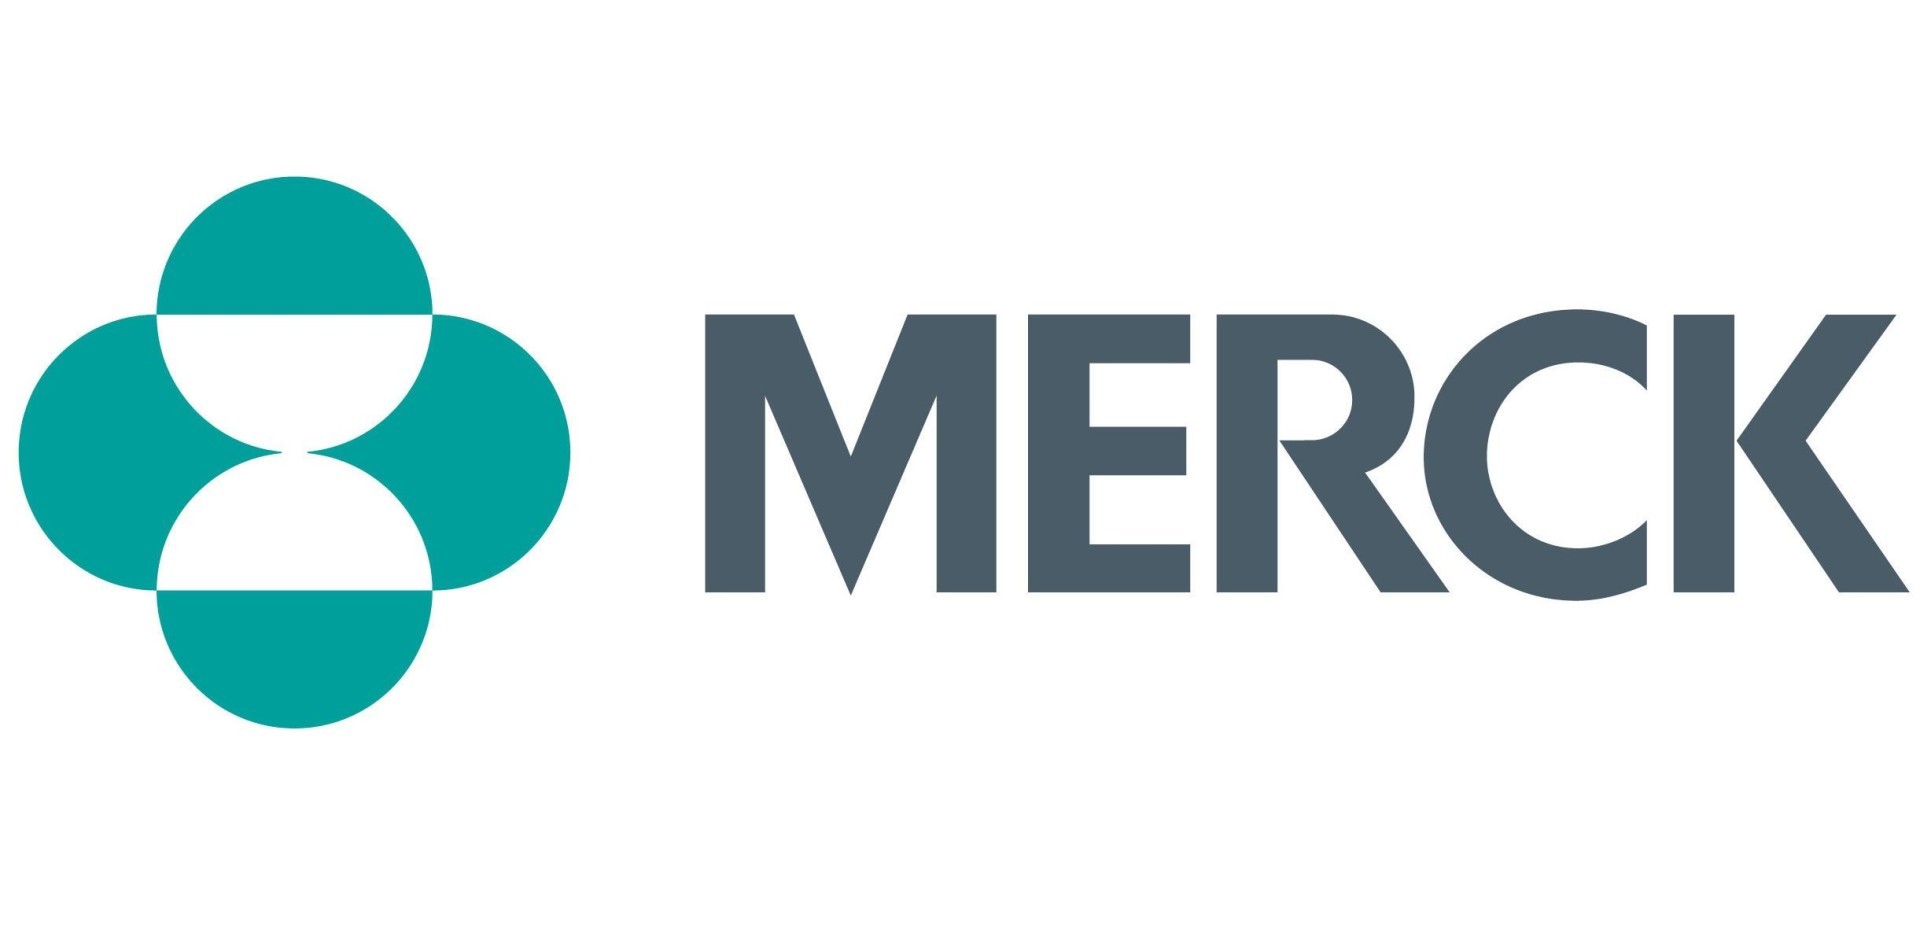 Merck Co Inc Nysemrk Goldman Names Merck Co Inc Mrk